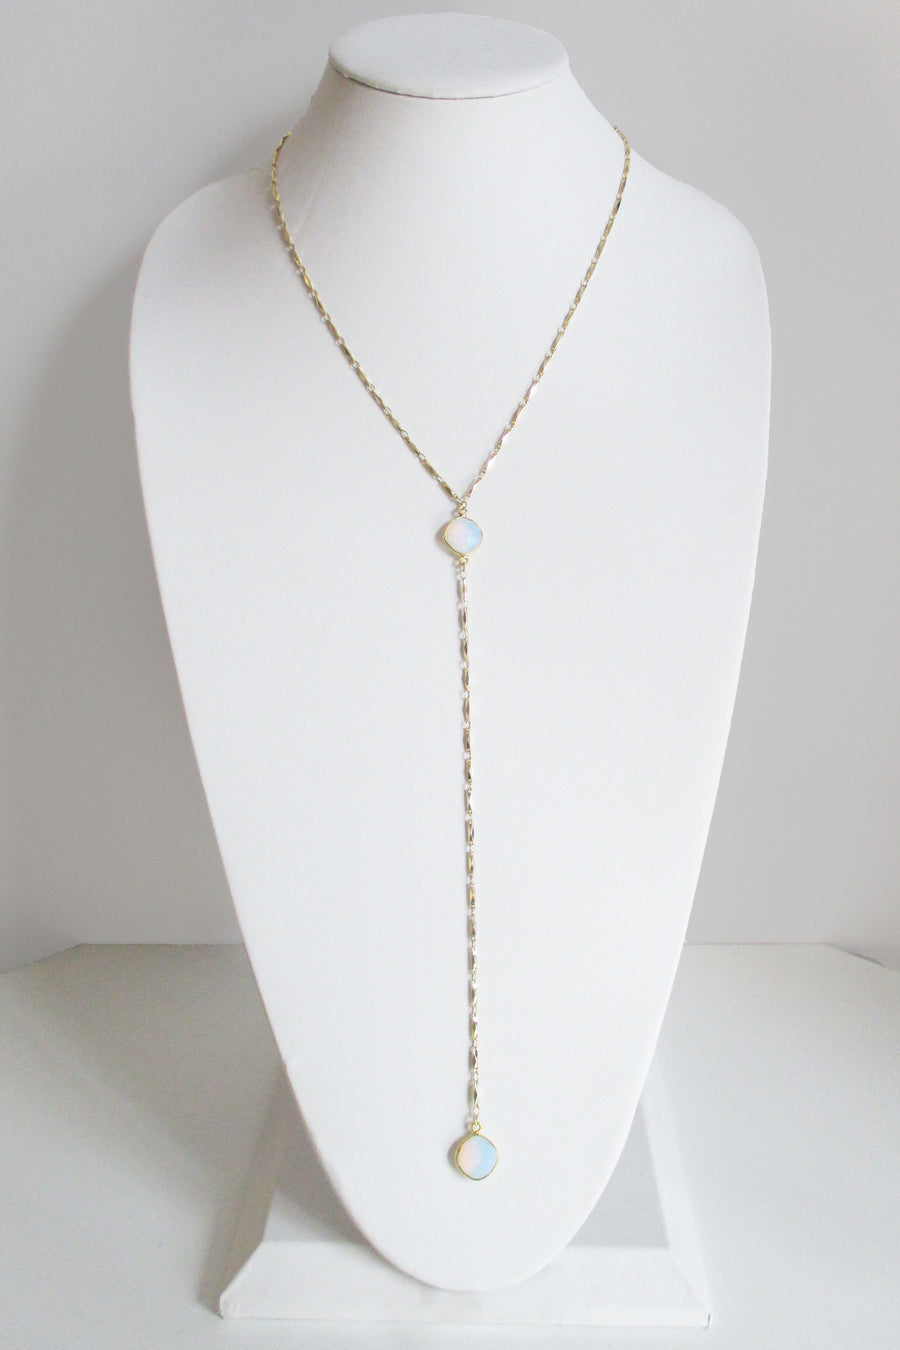 MG ANYA CELESTE Y NECKLACE WHITE OPAL